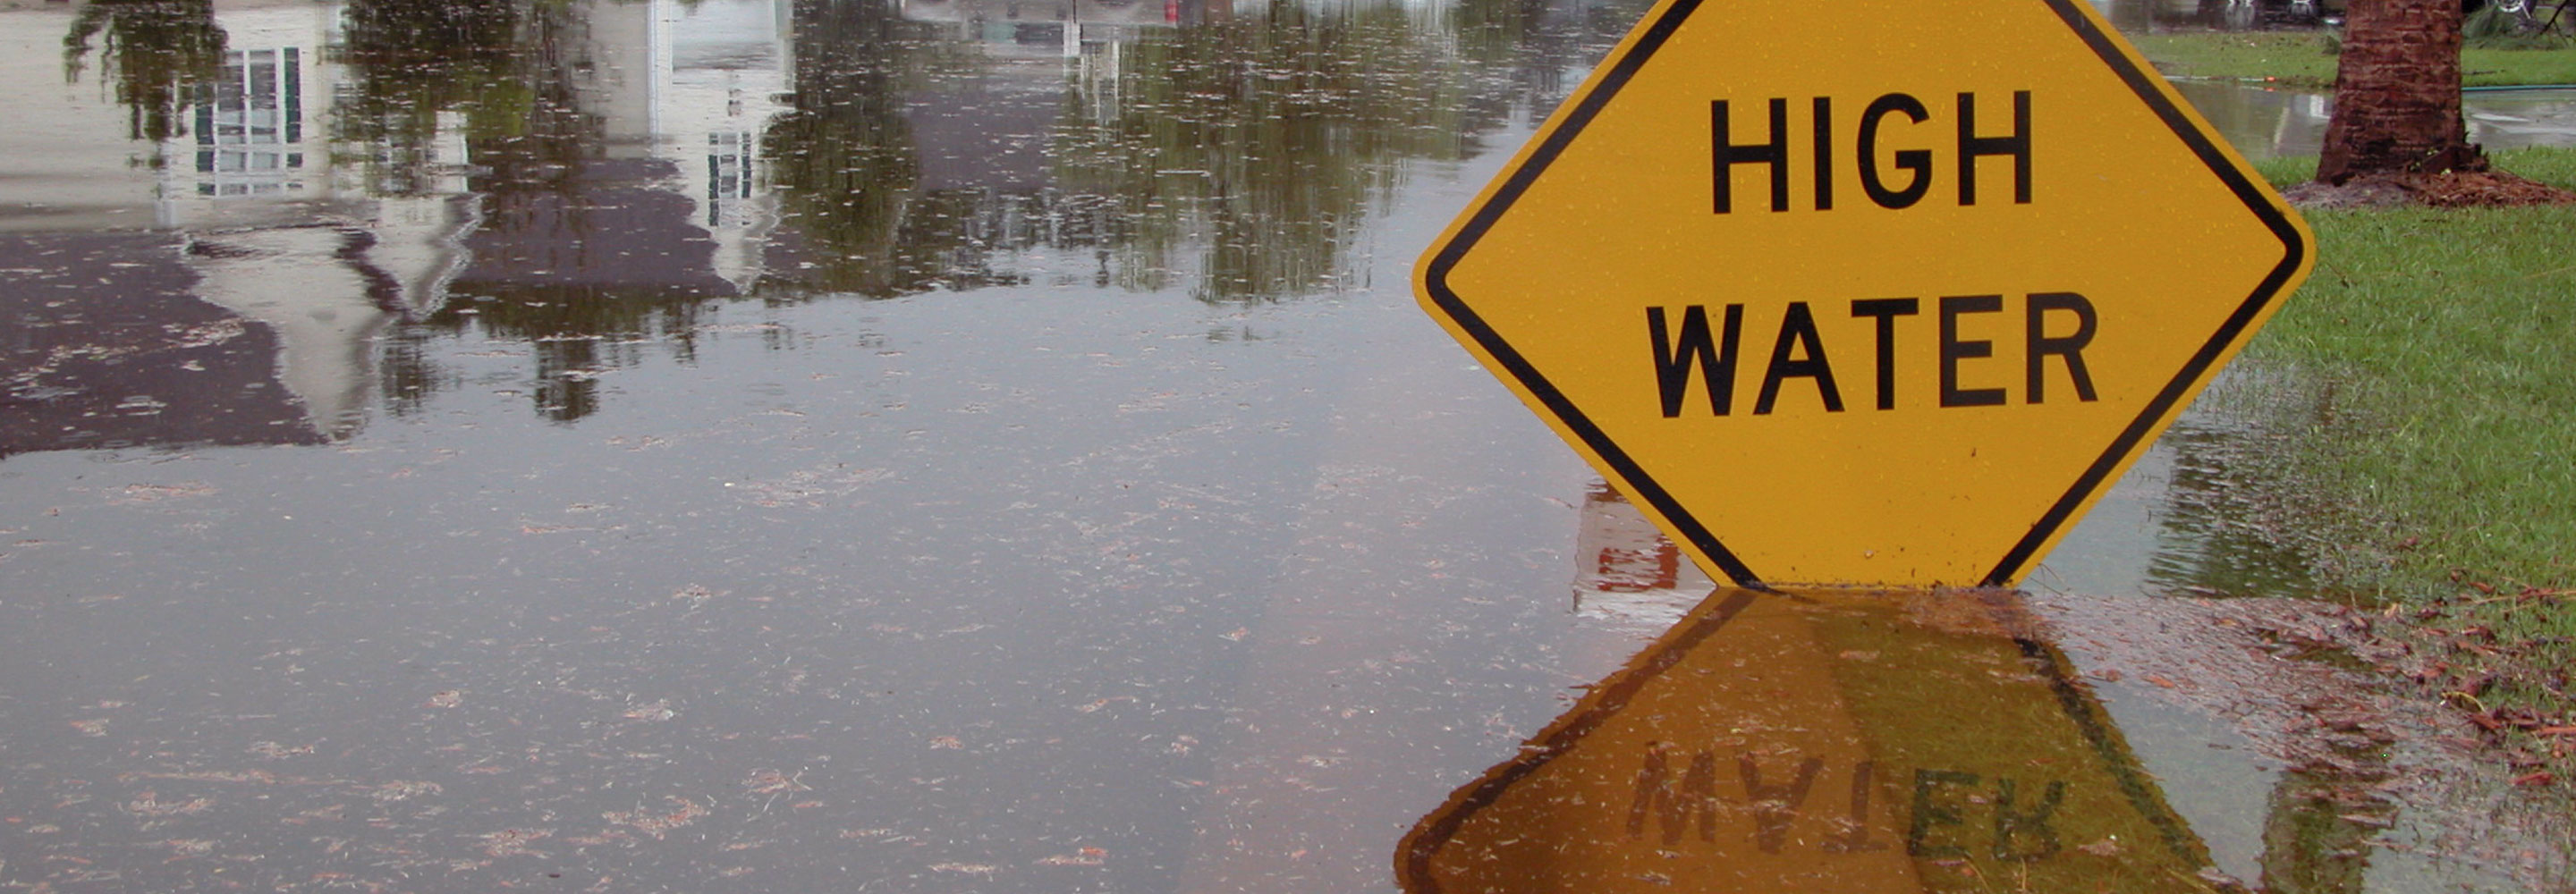 High water sign in deep water